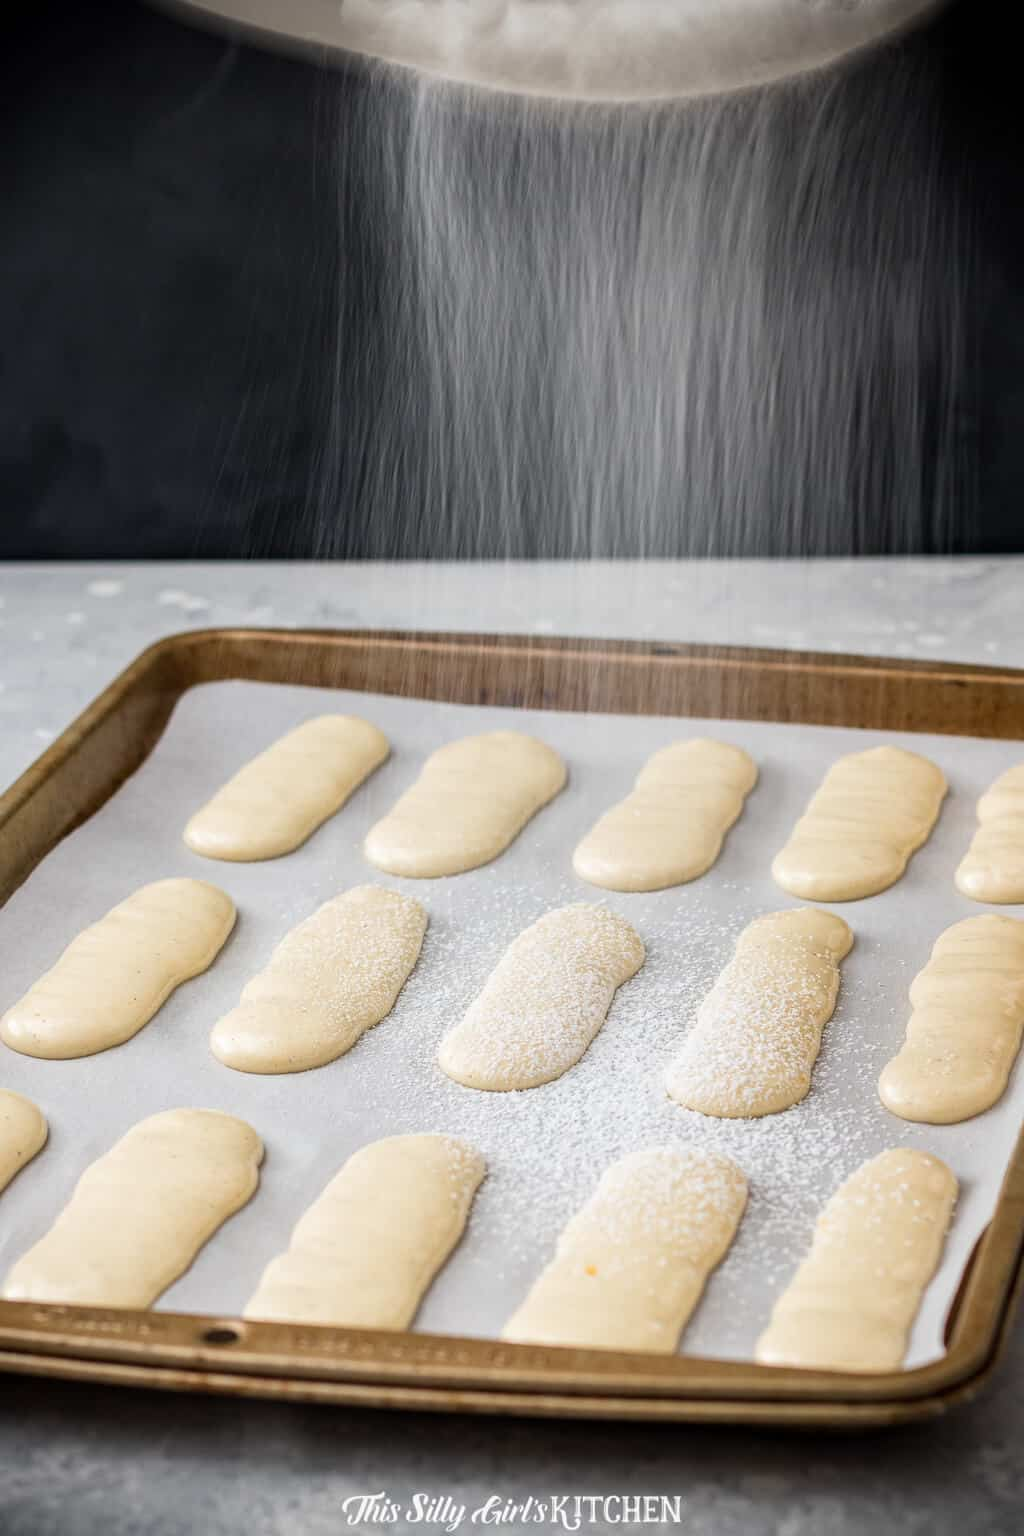 Ladyfinger cookies are light, crunchy cookies with a subtle sweetness. #Recipe from ThisSillyGirlsKitchen.com #ladyfinger #tiramisu #cookie #ladyfingersdessert